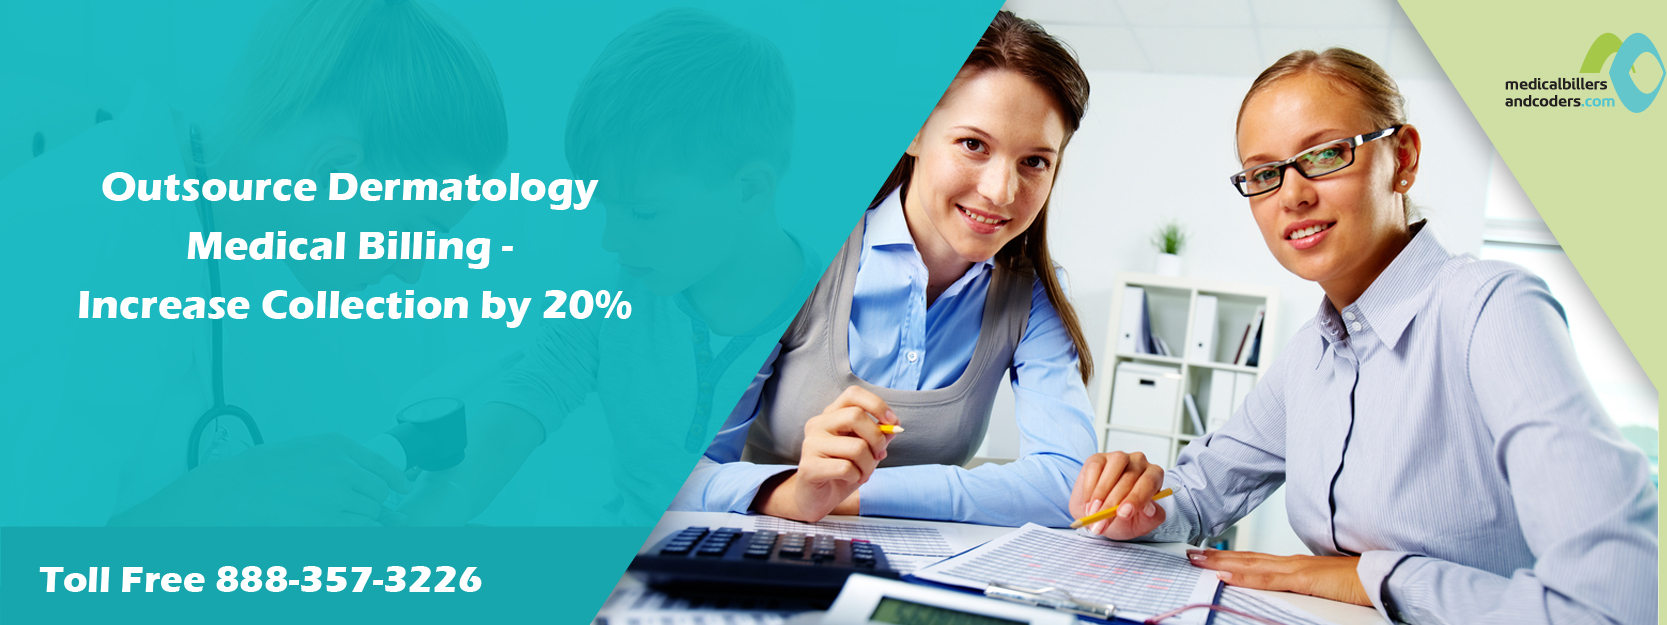 outsource-dermatology-medical-billing-increase-collection-by-20%